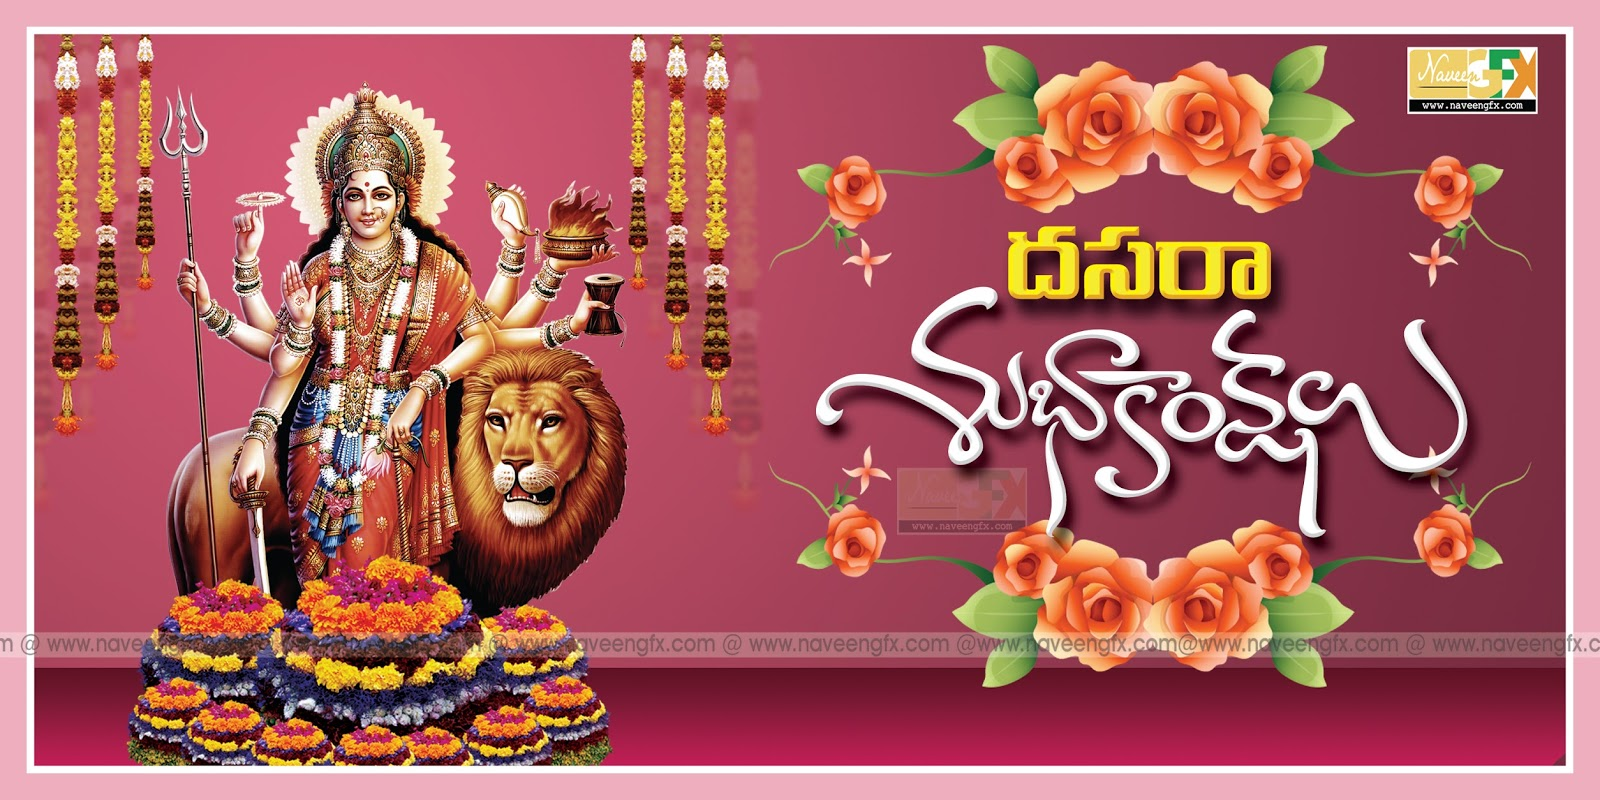 happy dussehra telugu latest greetings and wishes quotes in telugu font  naveengfx